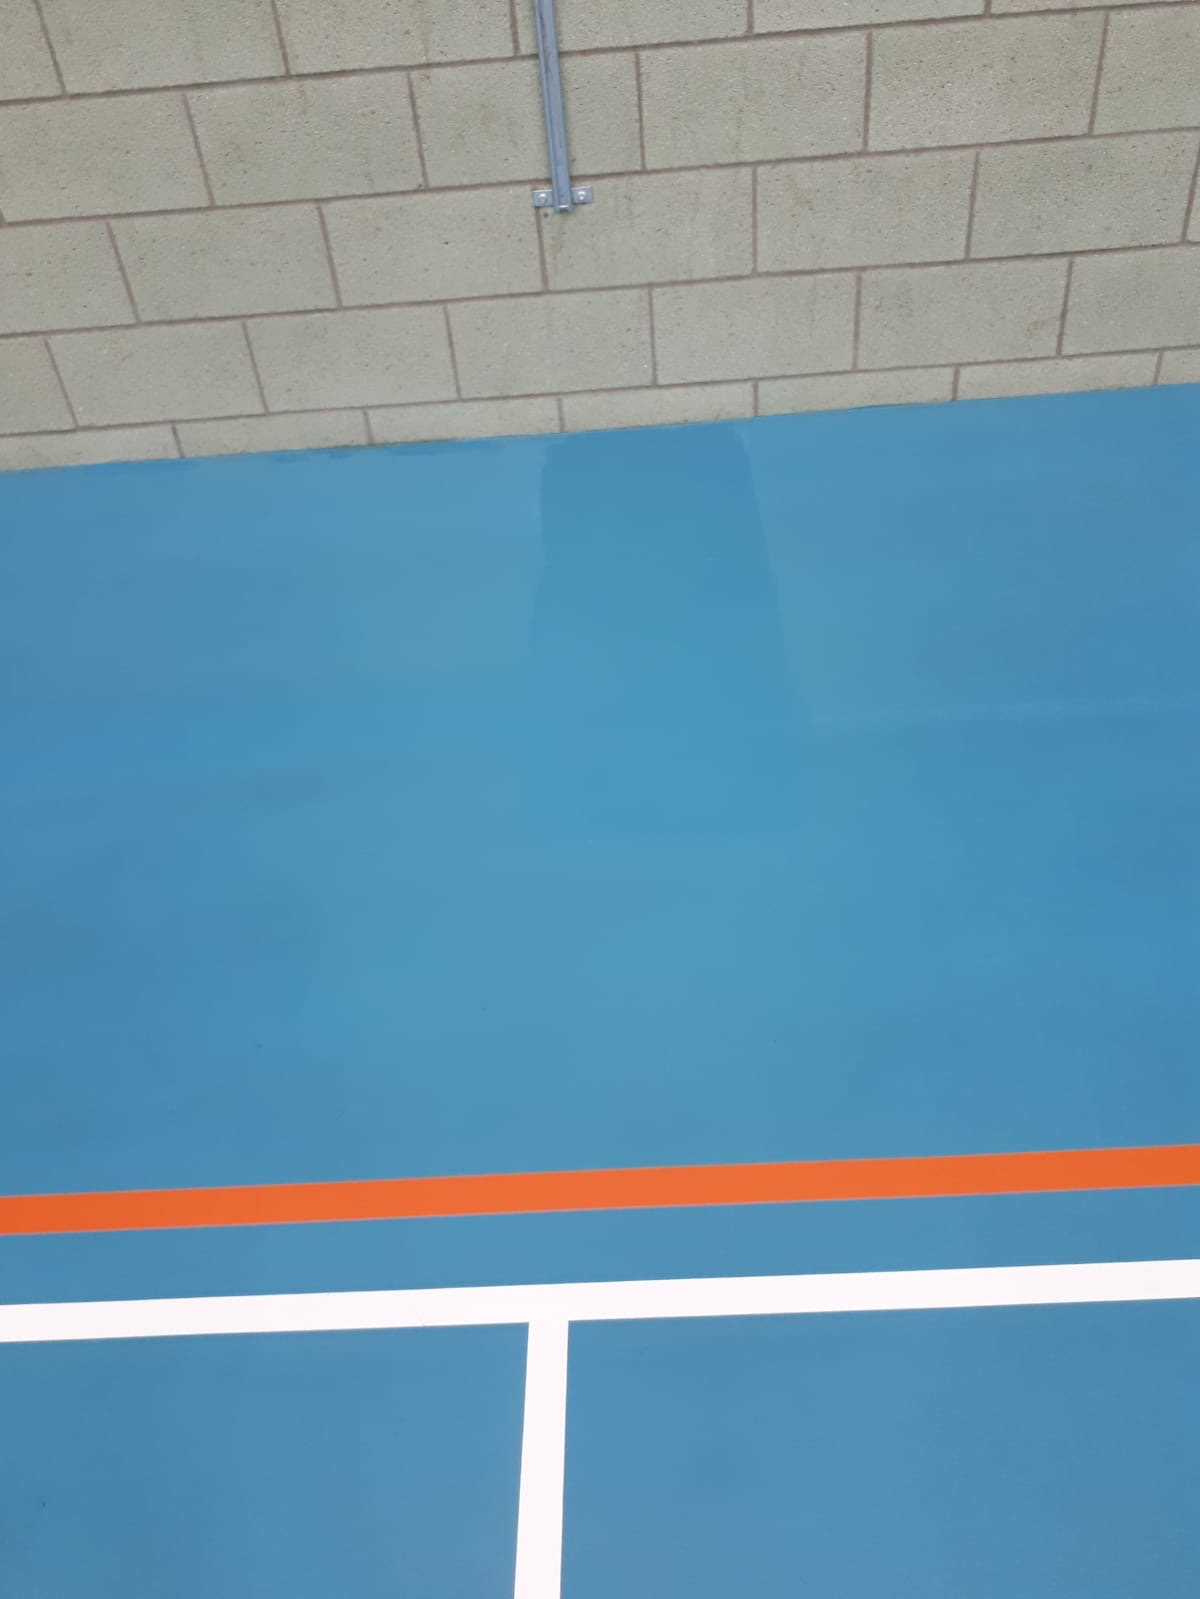 Indoor Multiuse Sports Floor Repair and Deep Clean